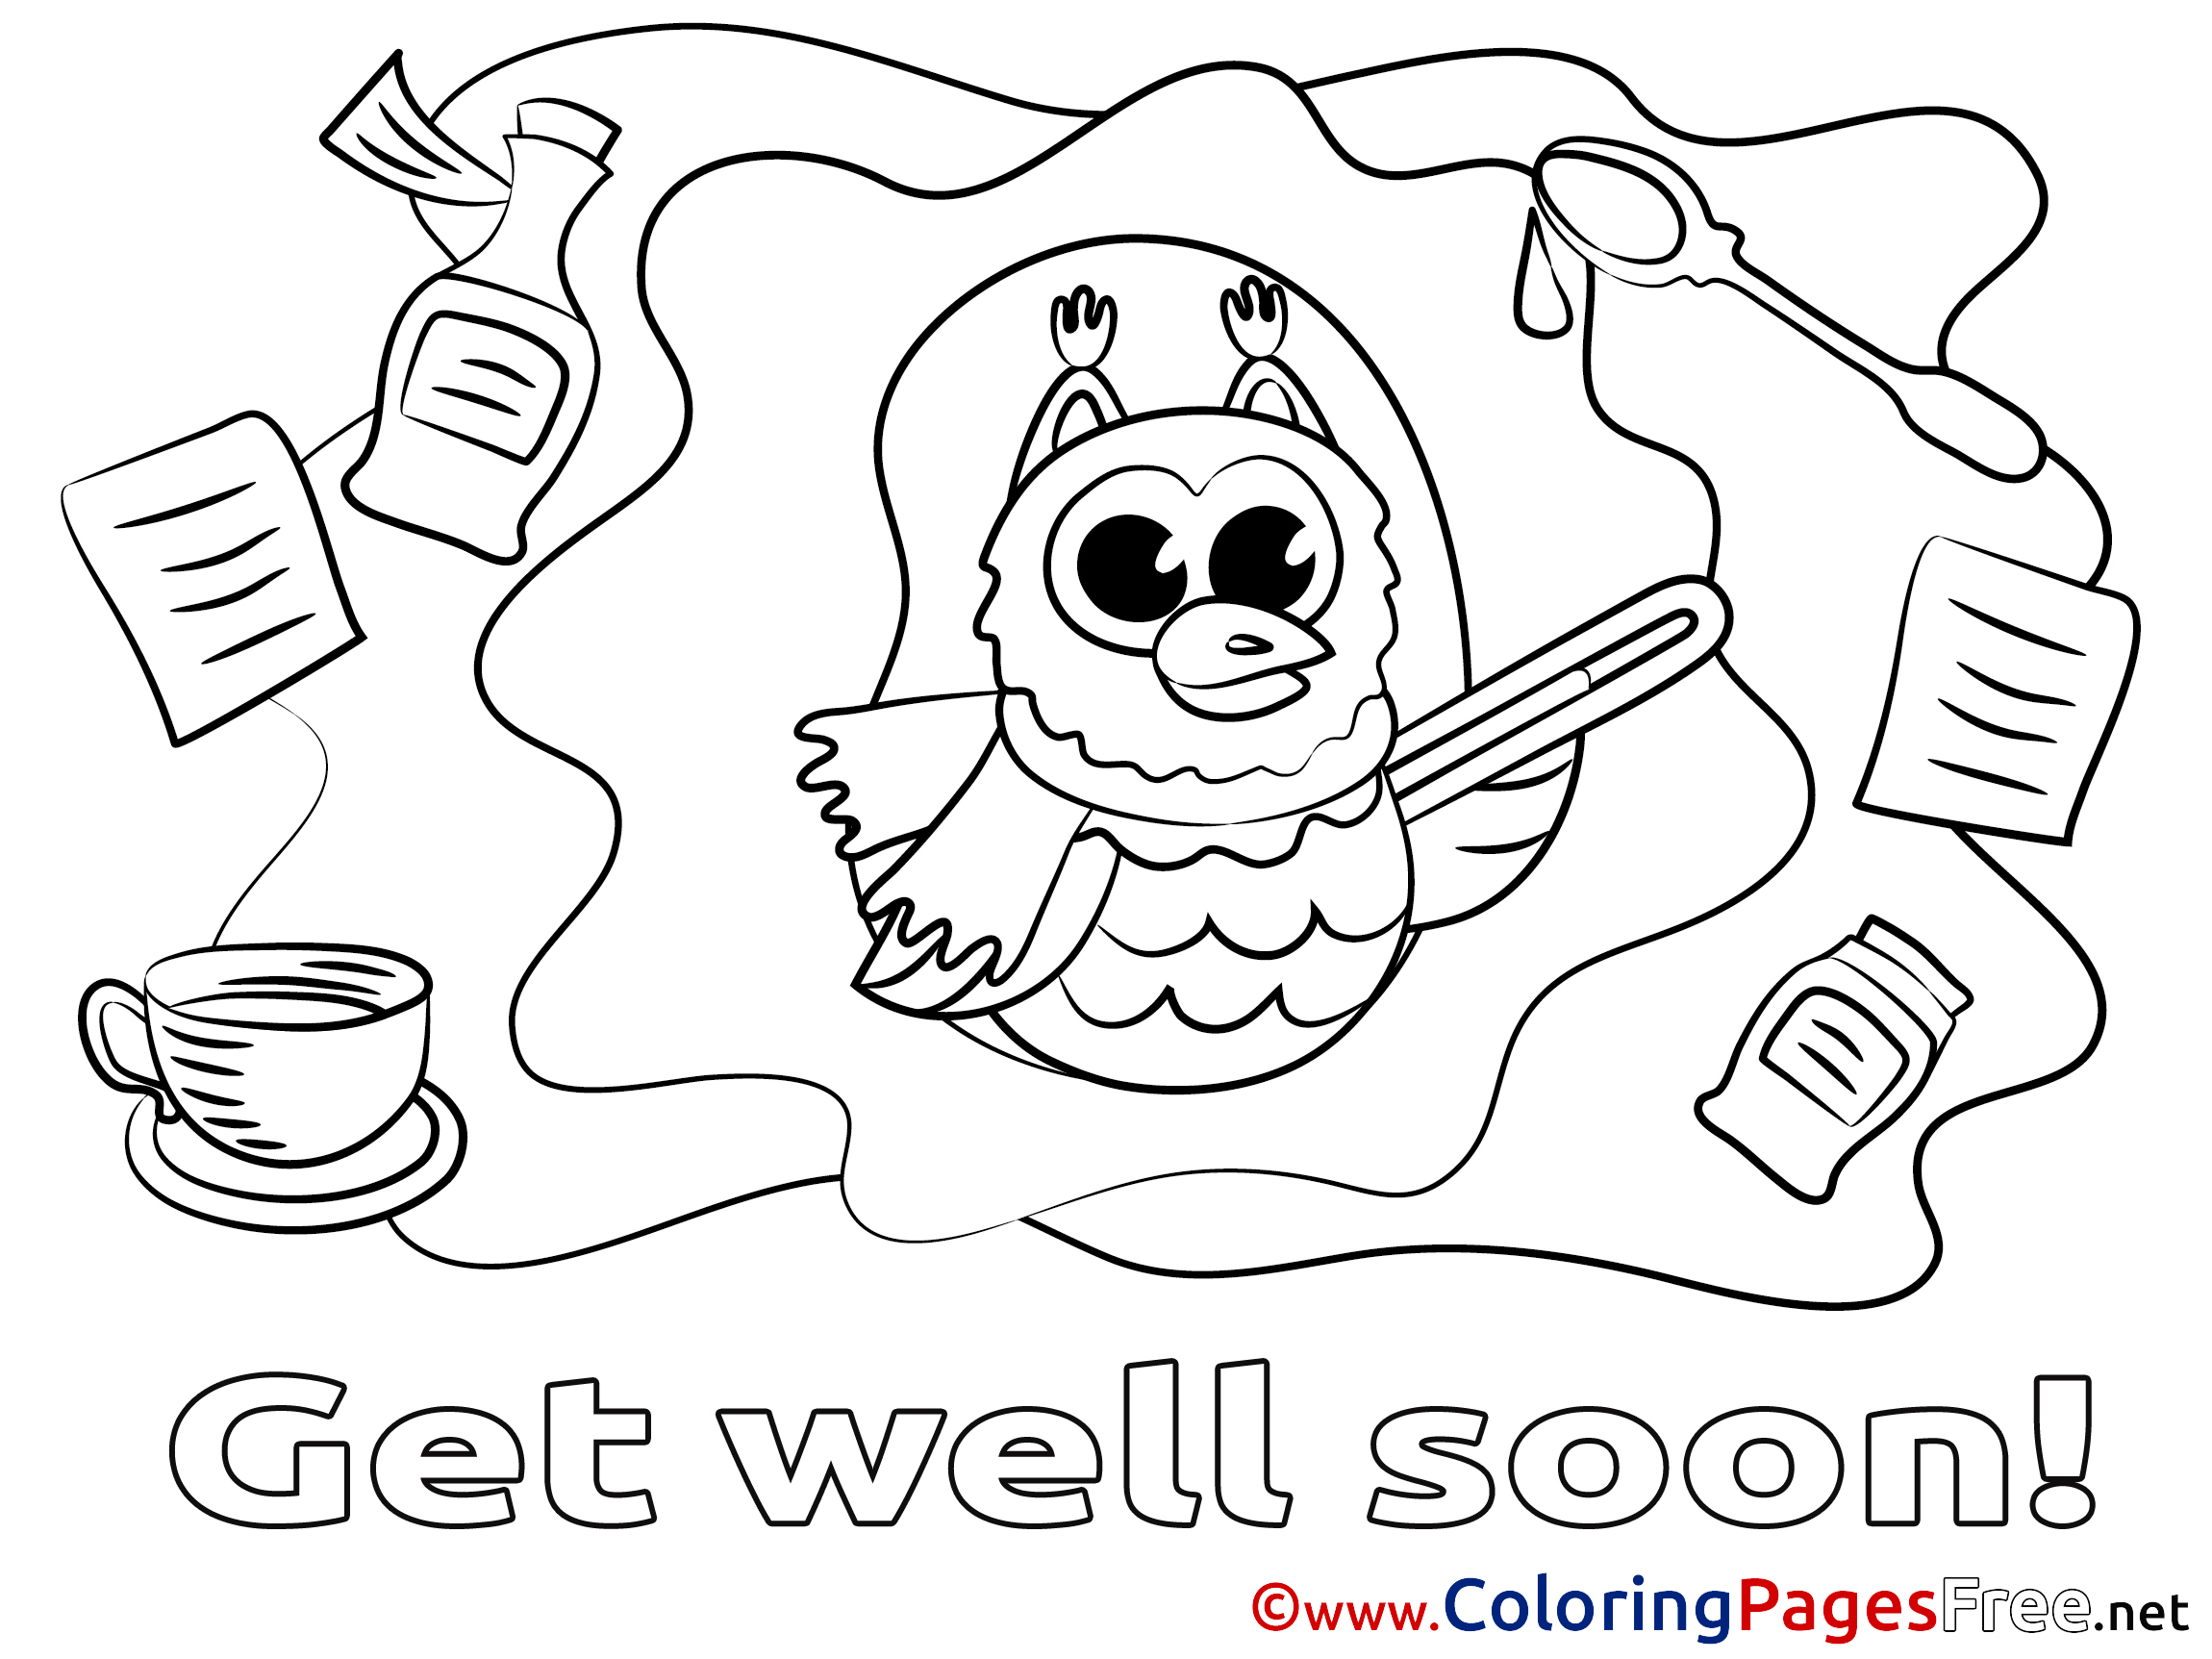 - Owl Get Well Soon Coloring Sheets